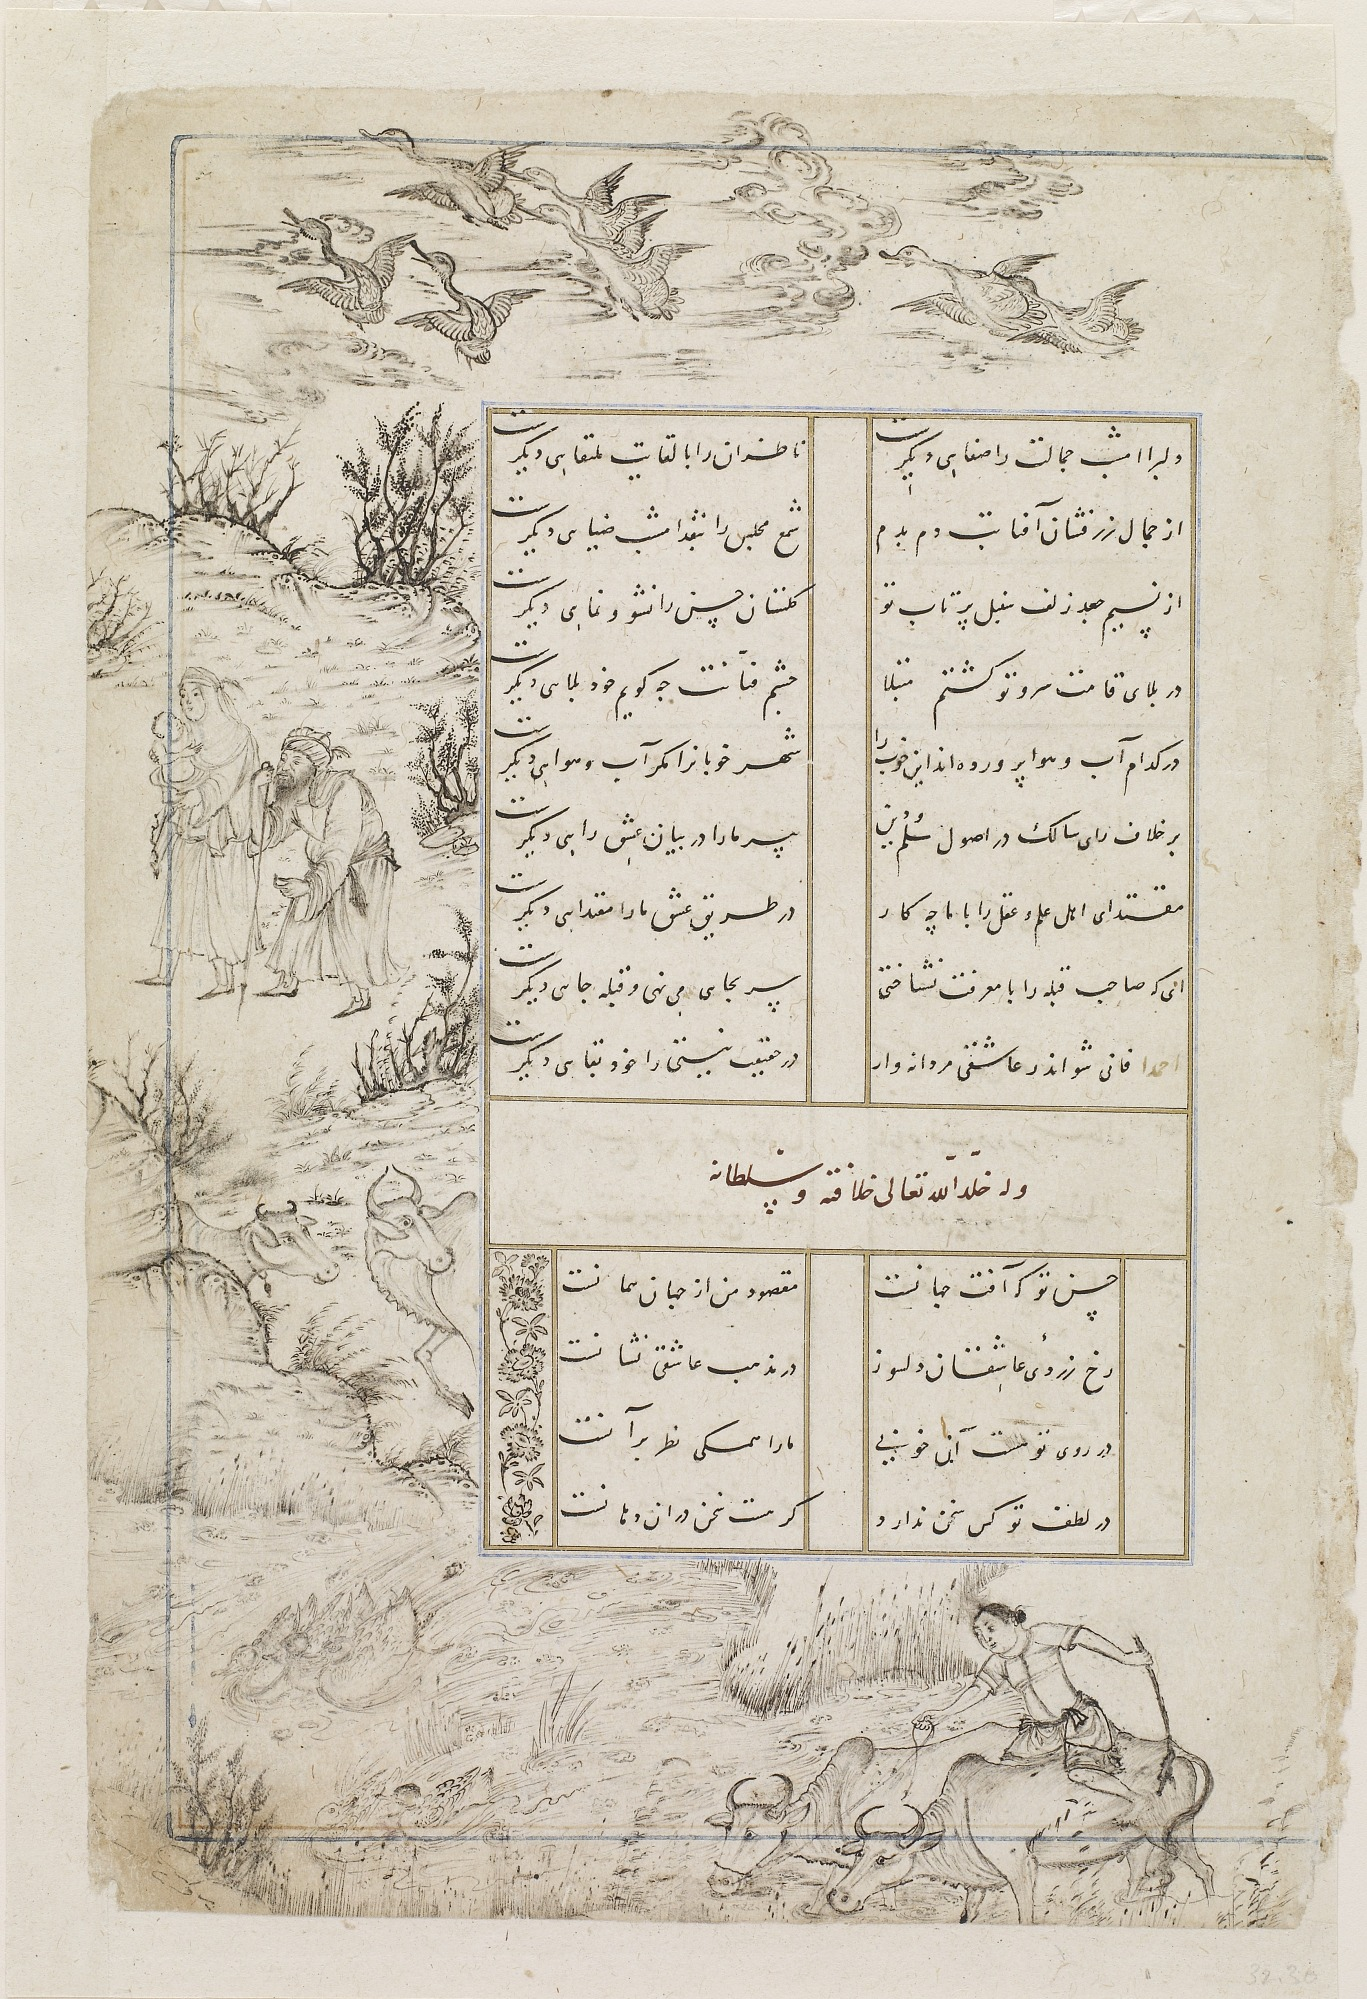 Folio from a Divan (collected poems) by Sultan Ahmad Jalayir (d.1410); recto: Pastoral scene; verso: text